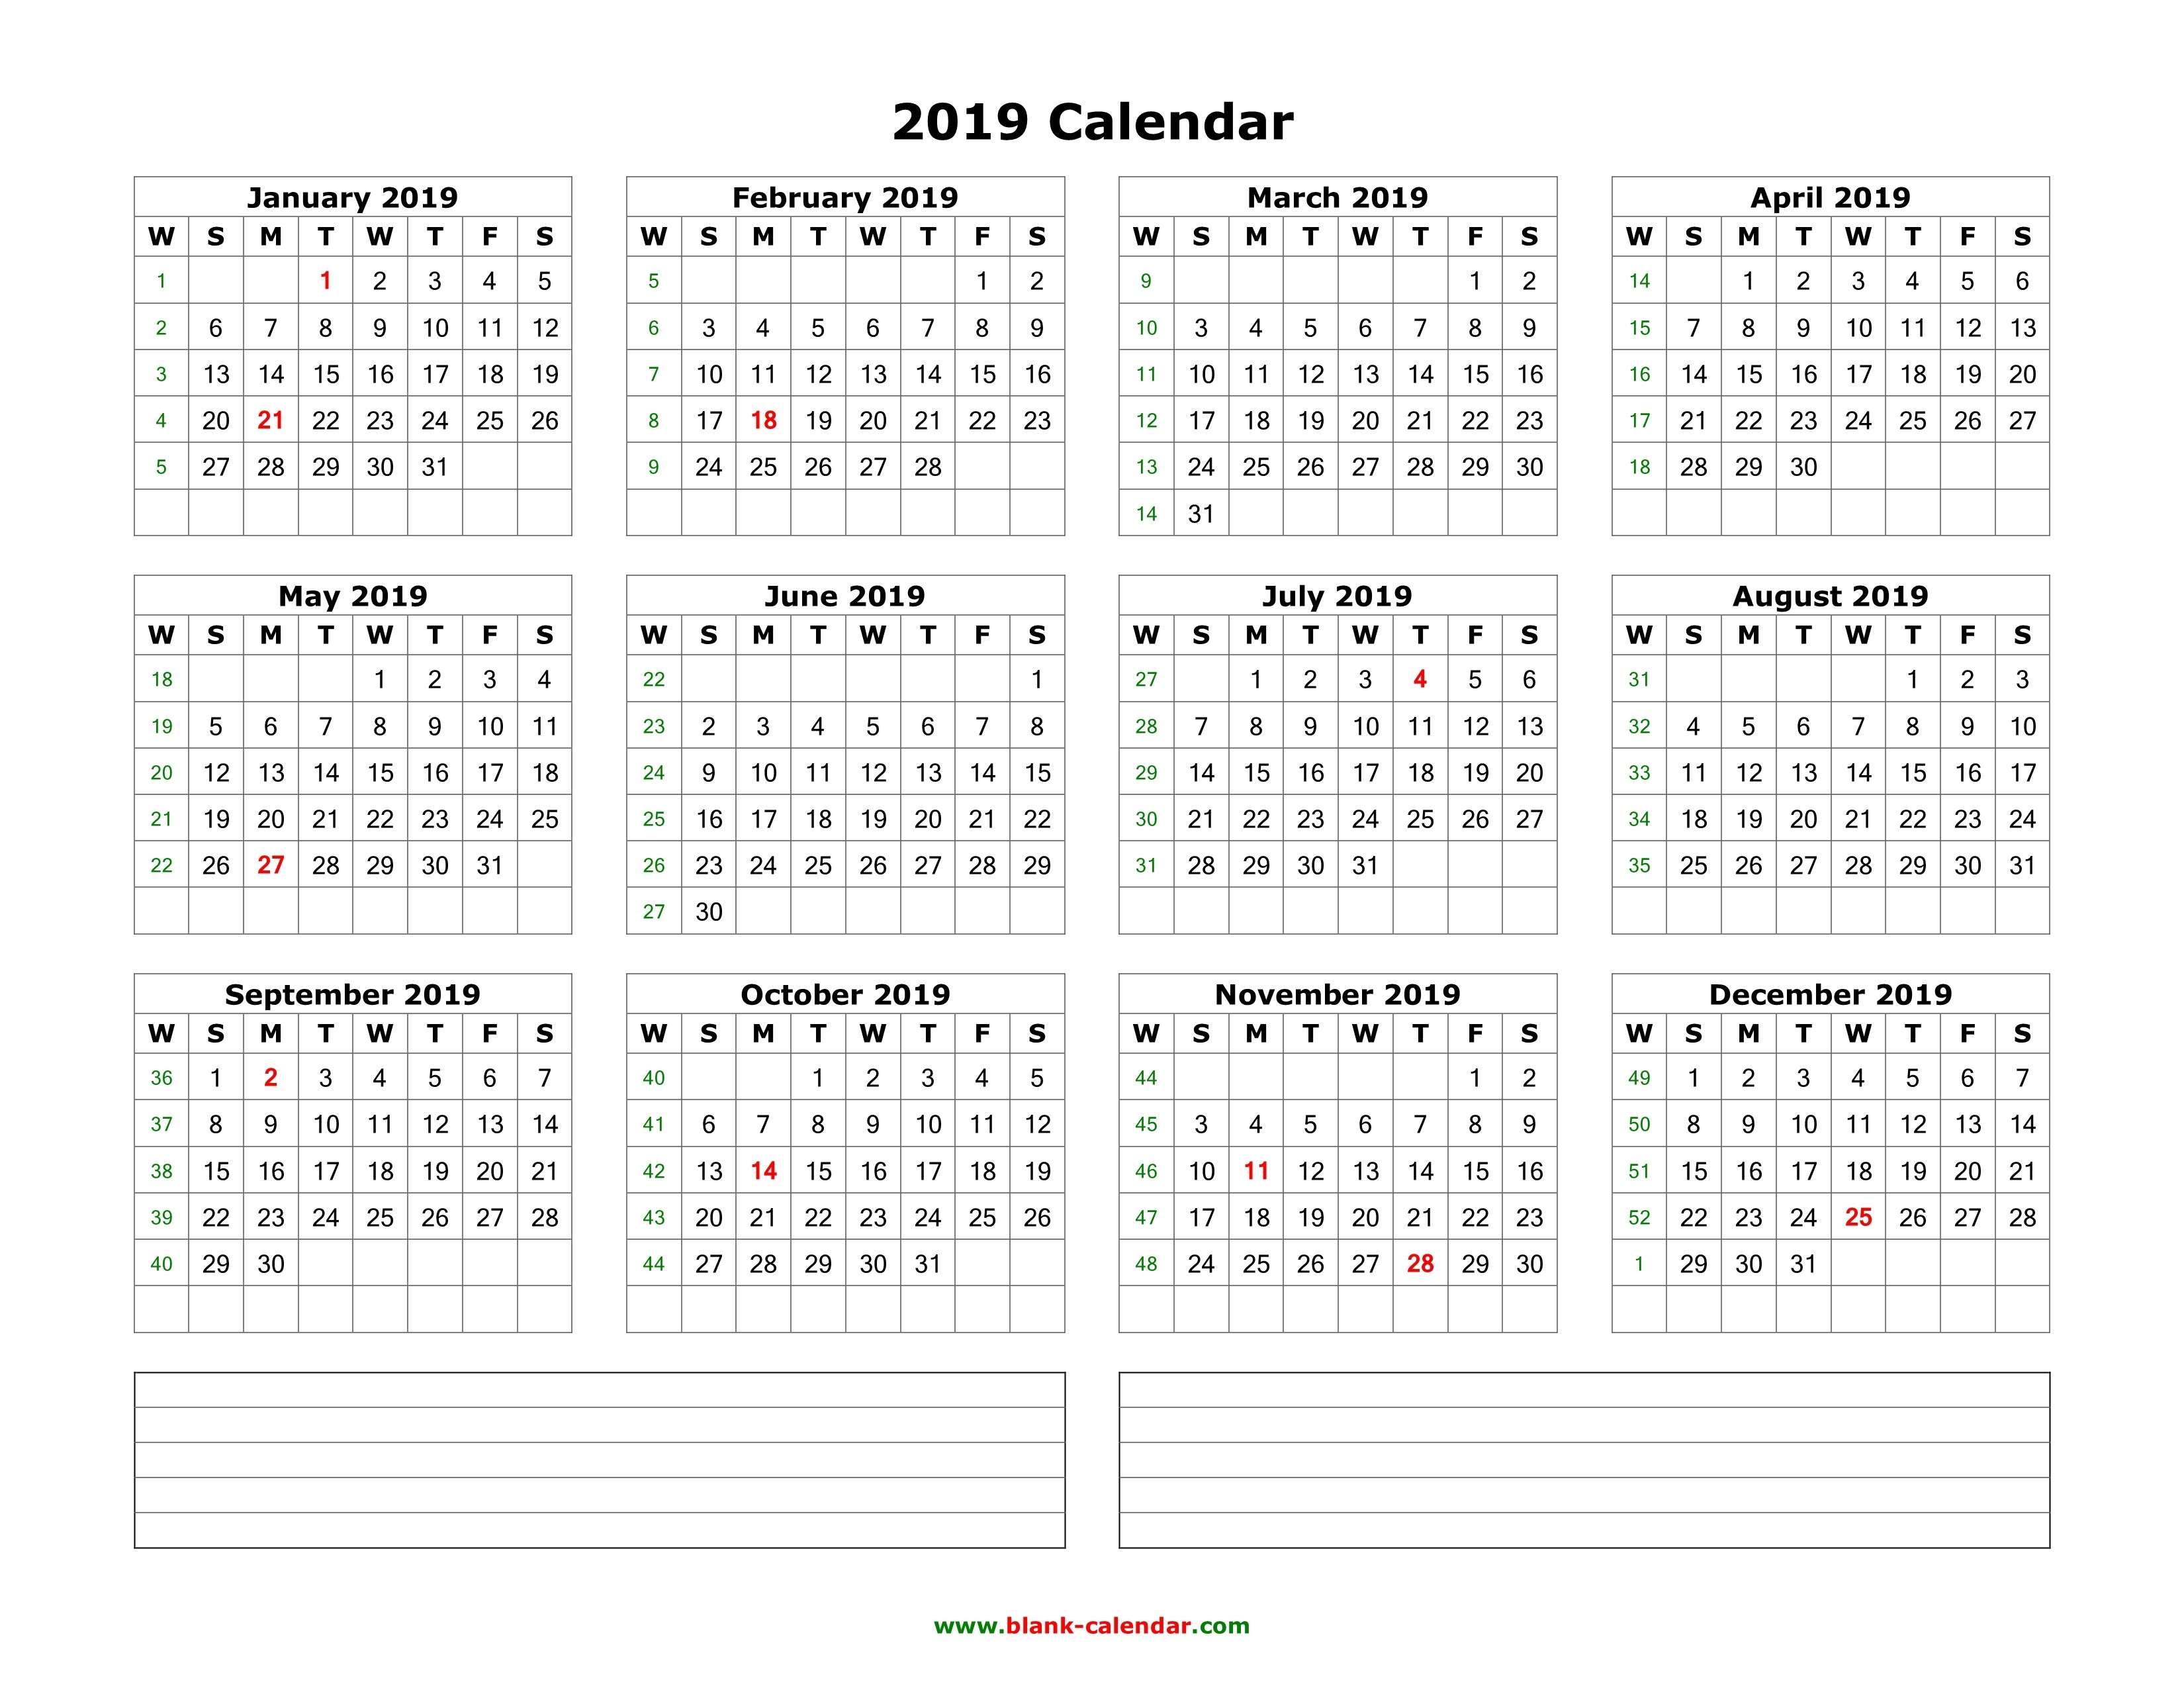 Download Blank Calendar 2019 With Space For Notes (12 Months-Blank Calendar 4 Months One Page